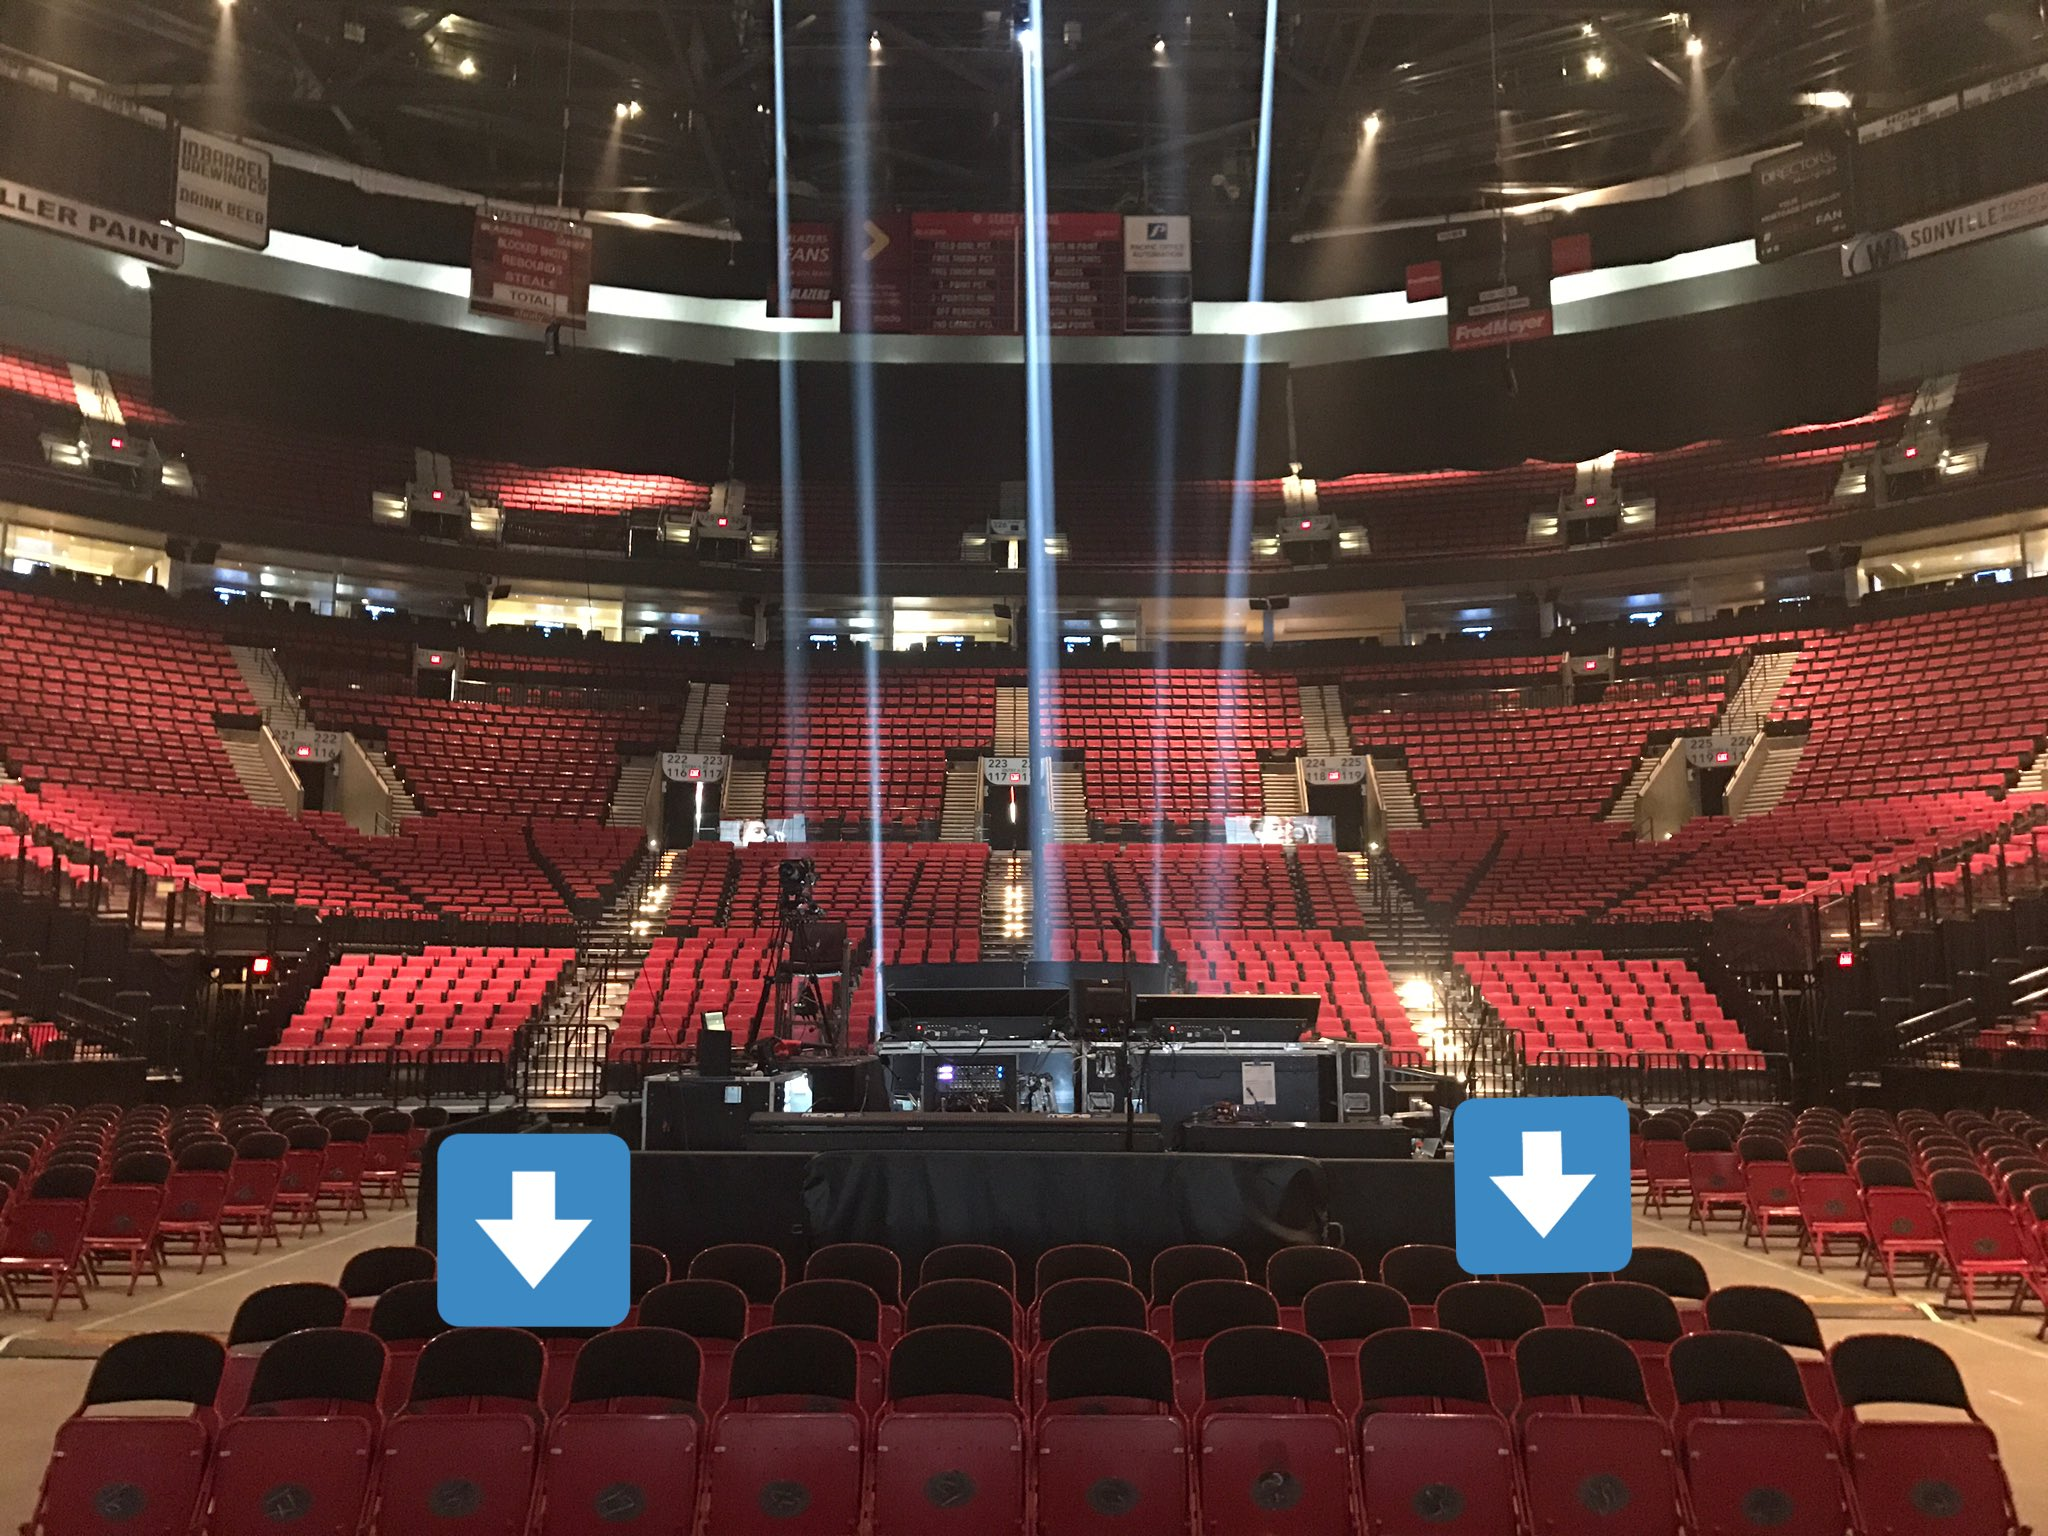 In case you are wondering THESE are a few of the seats released. Most of the rest are already gone. https://t.co/RukKvADPz9